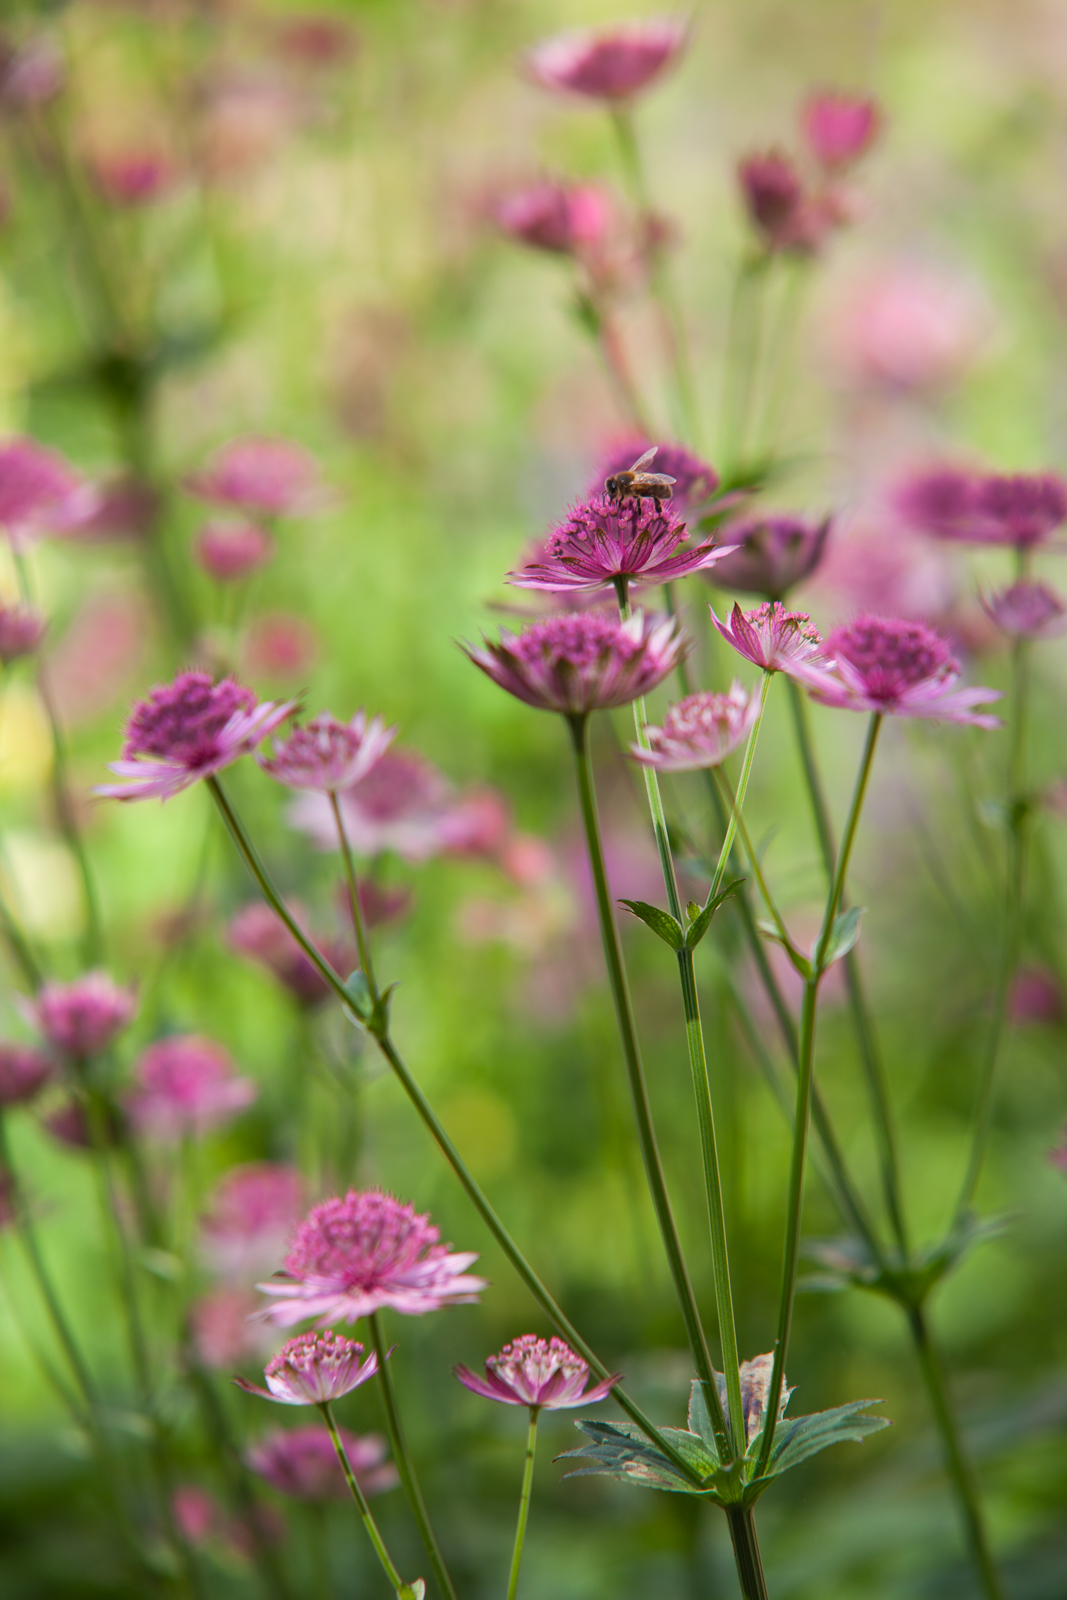 Astrantia is an insect friendly option